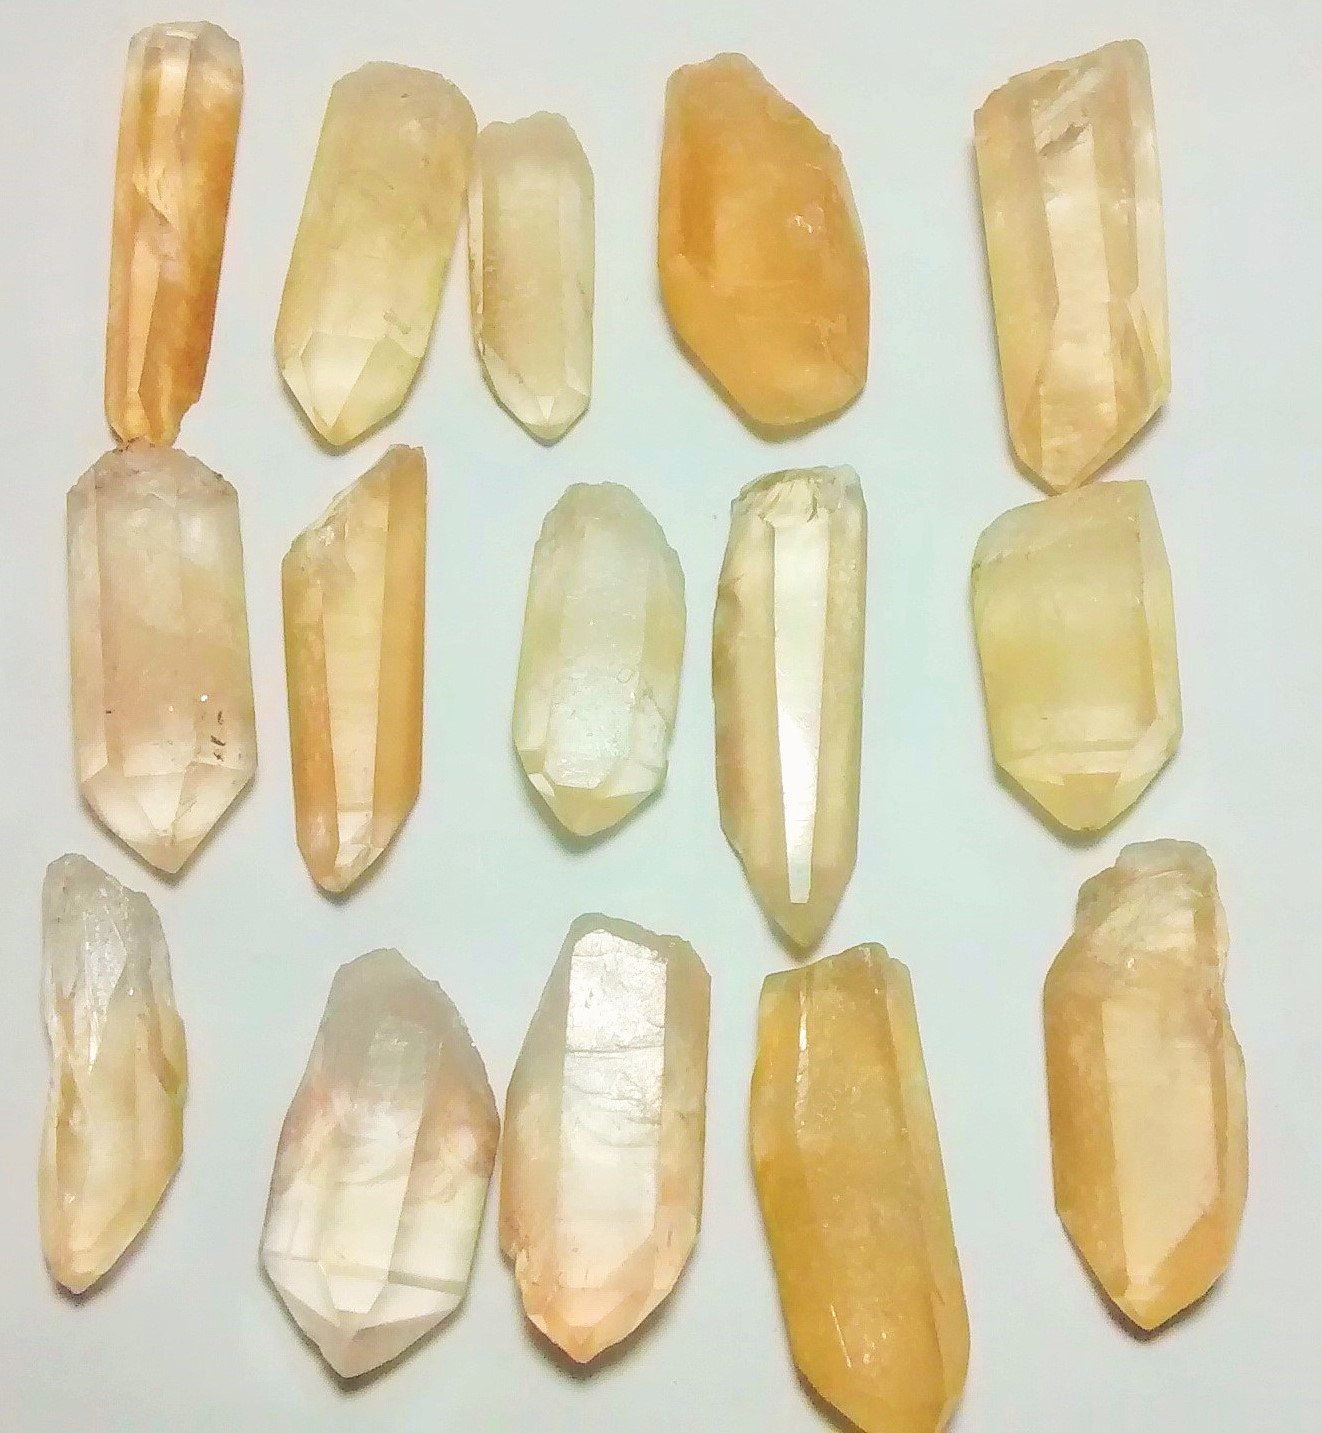 Stones from Uruguay - Natural Yellow Lemurian Seed Quartz Crystal Points